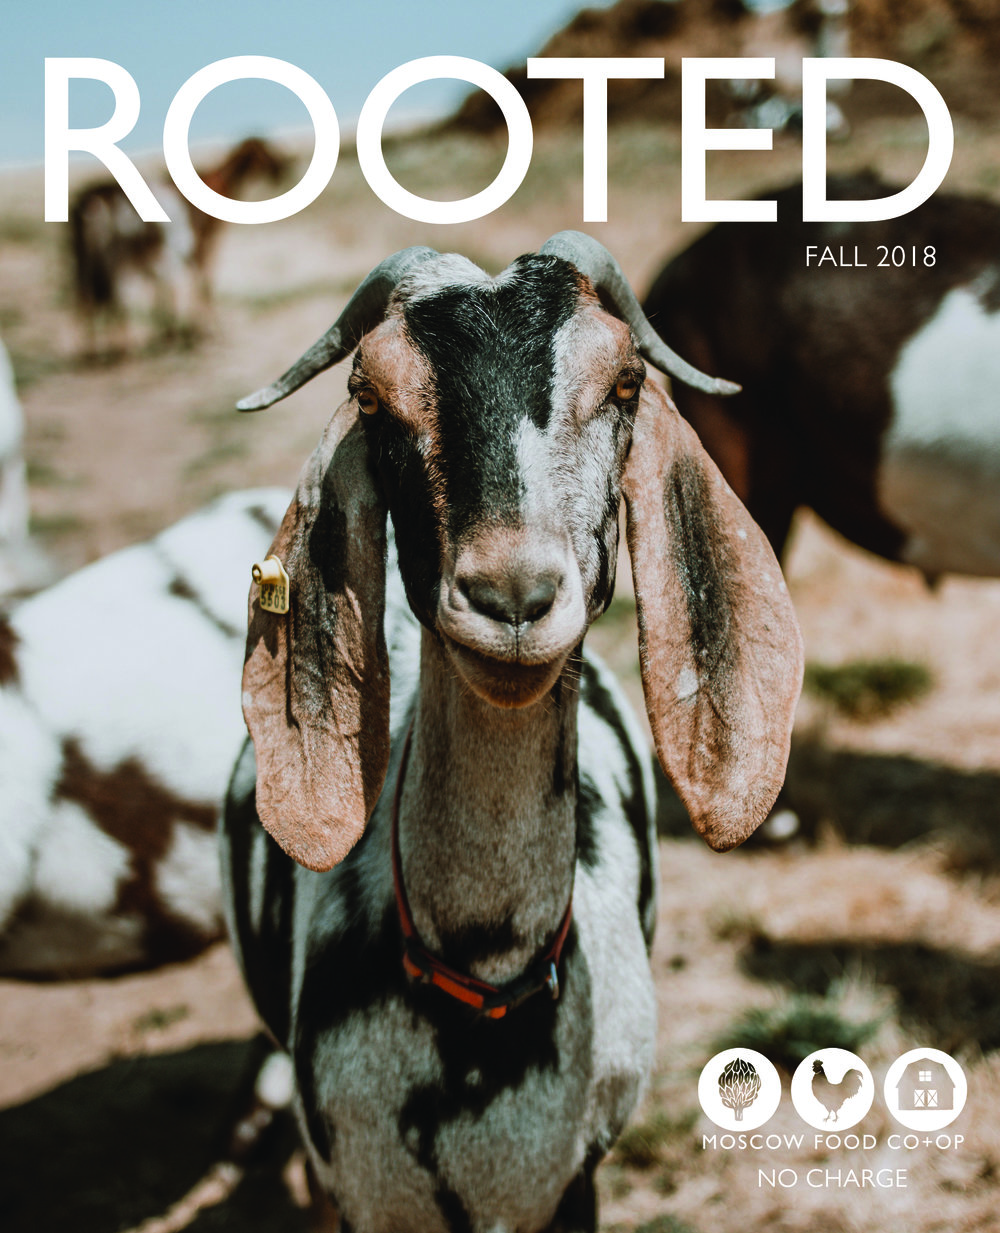 Fall 2018 - From upcoming events to Japanese dried persimmons you can make yourself, this issue of Rooted has it all. Check out our Garlic Guide and Mushroom Manual for tips and tricks for choosing the perfect variety for your meal! Also: read about Moonstruck Farms goat's milk soap and a spooky Halloween treat.